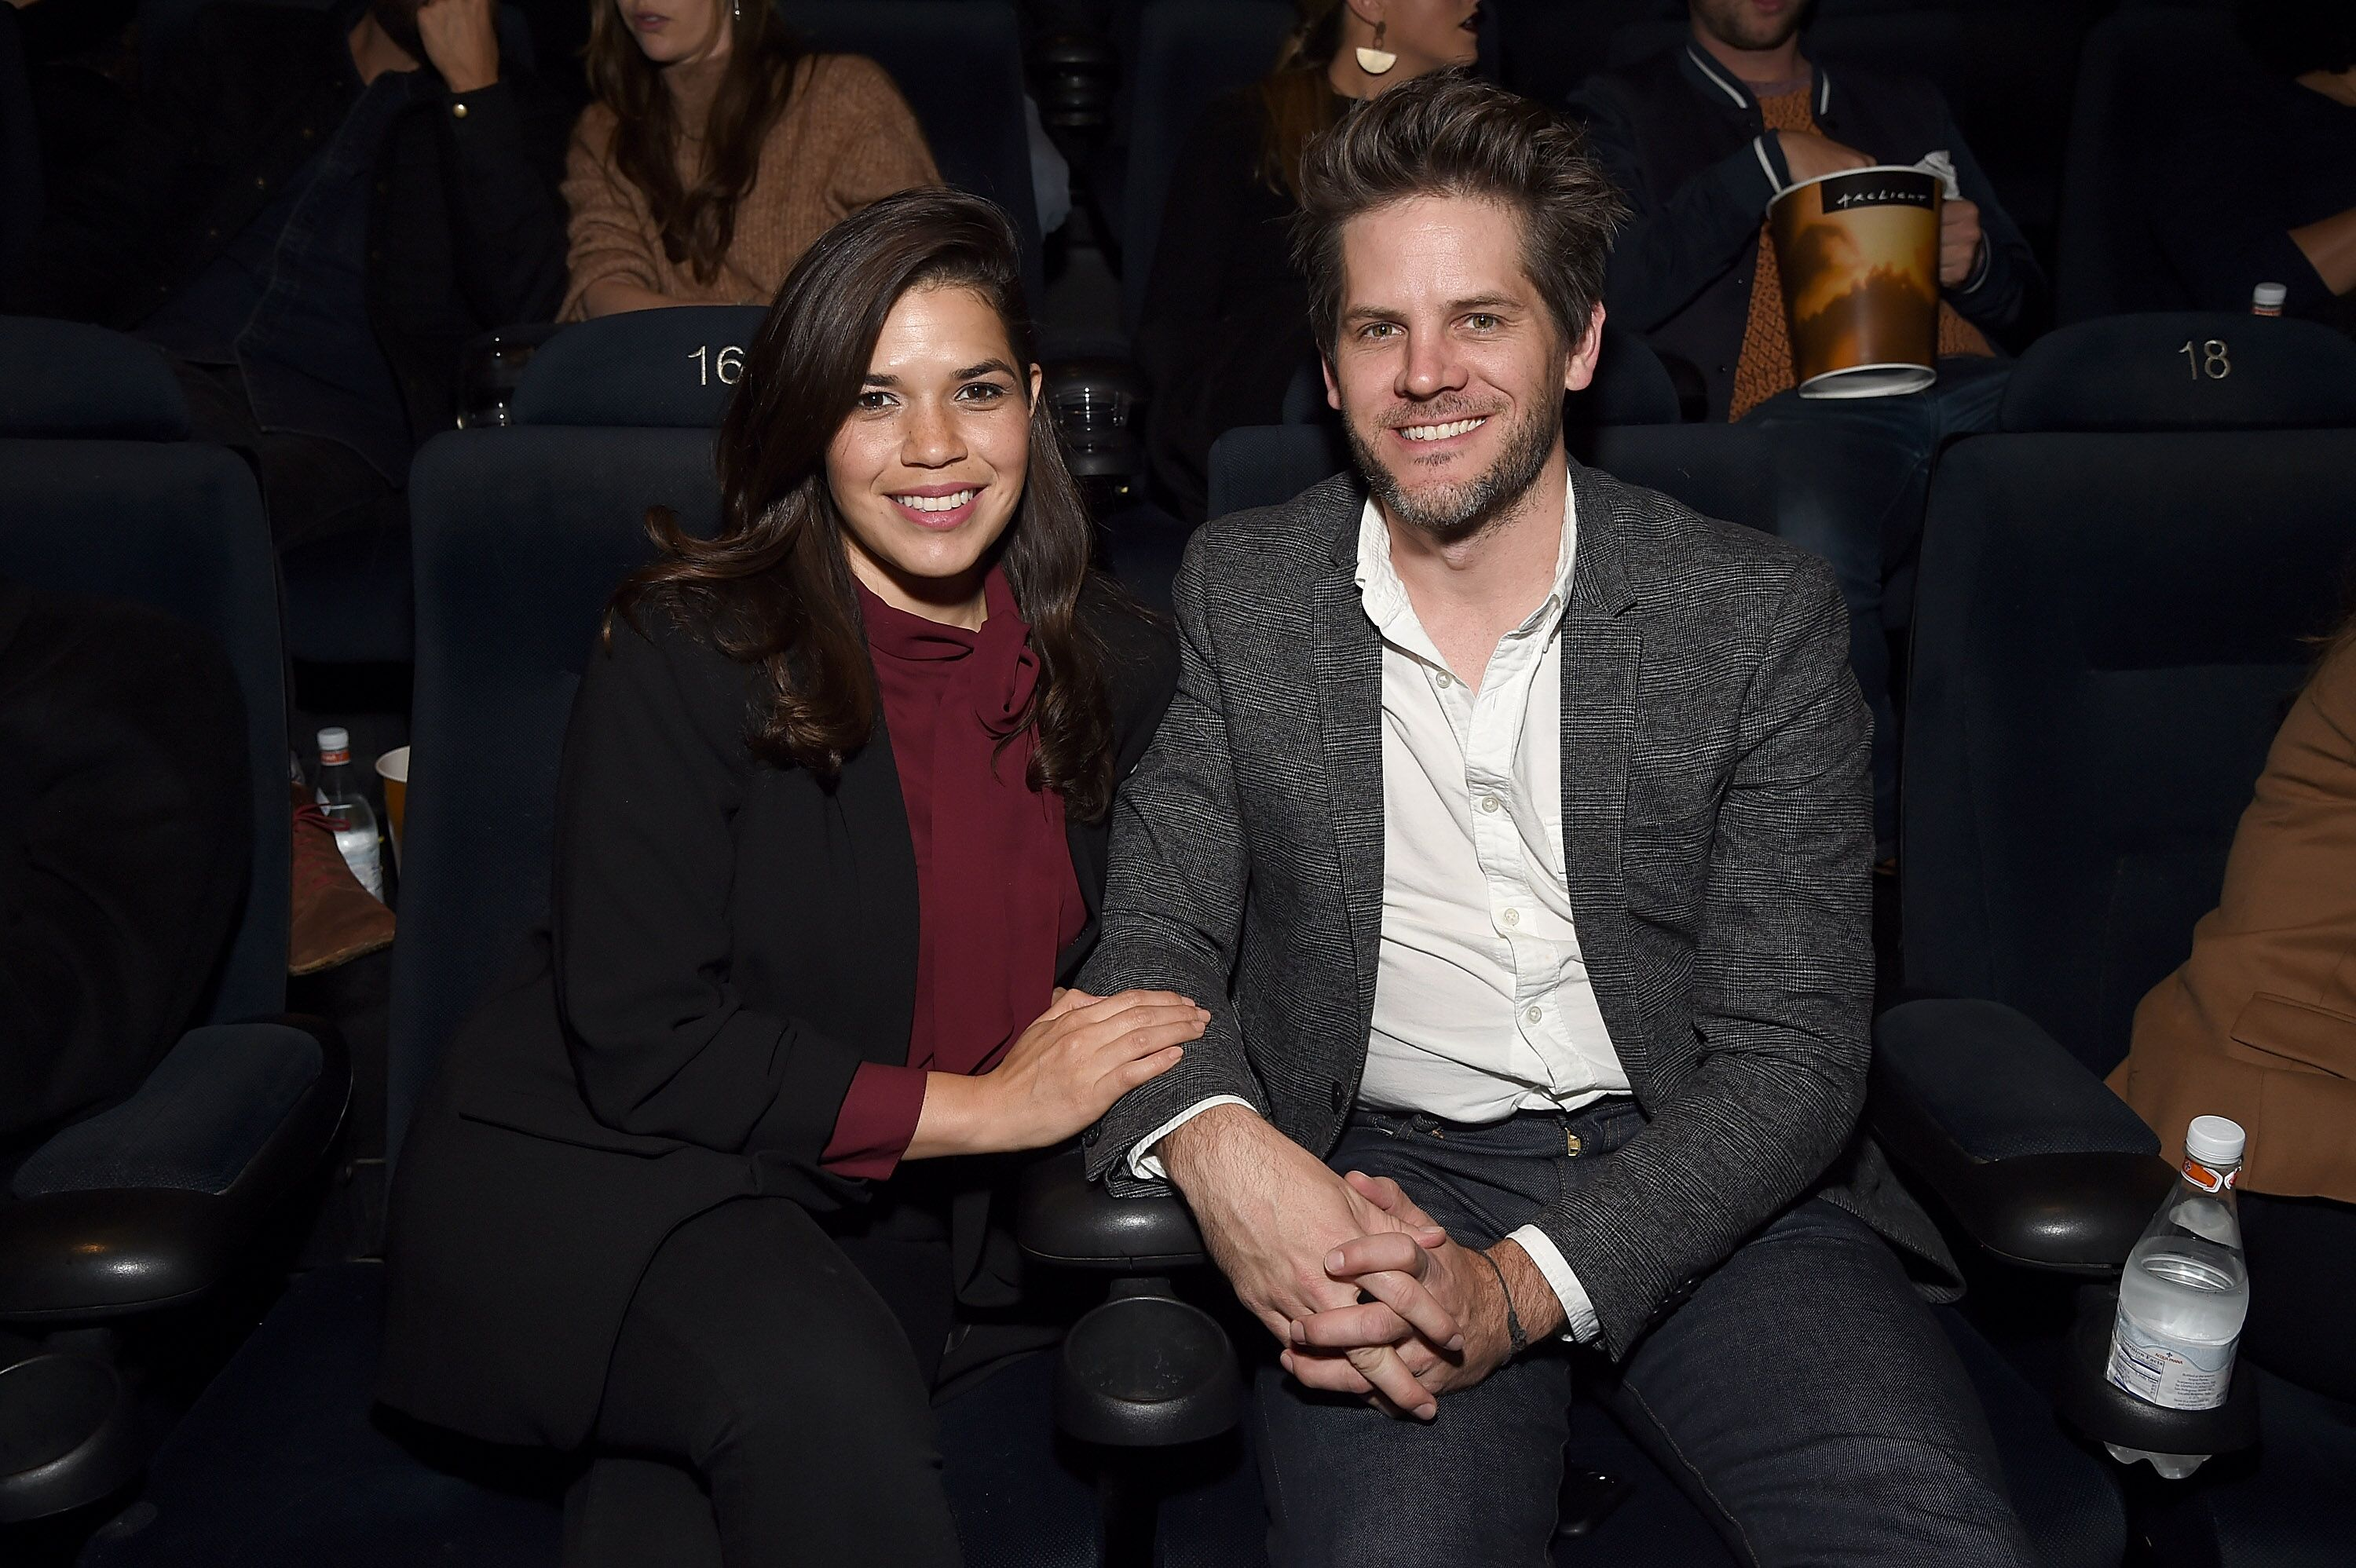 America Ferrera and Ryan Piers Williams at the Los Angeles premiere of 'Vox Lux' in 2018 | Source: Getty Images